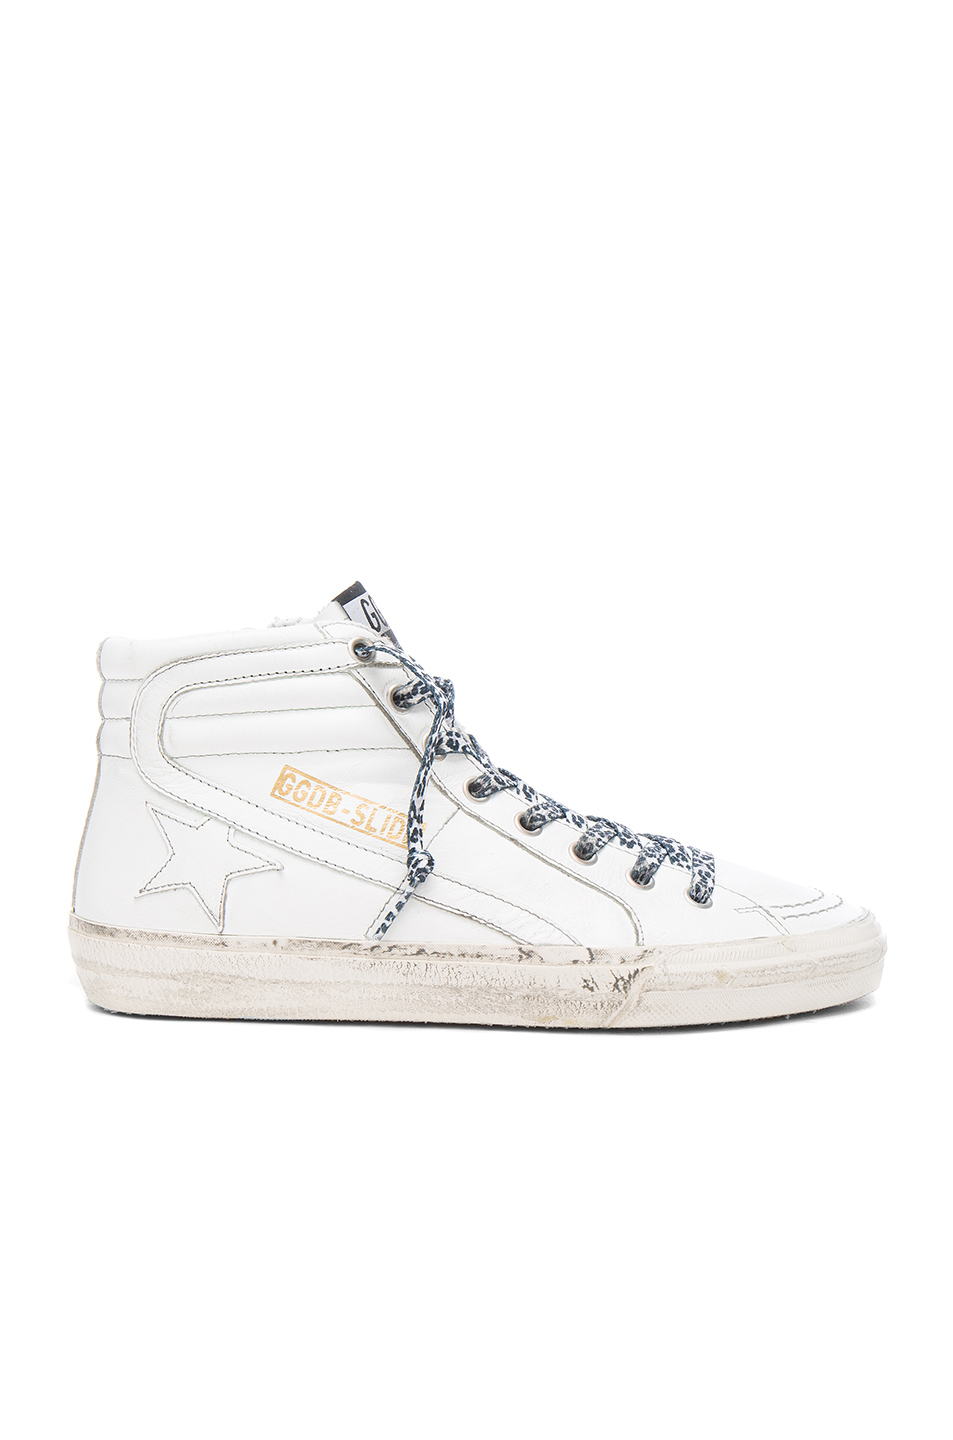 GOLDEN GOOSE Leather Slide Sneakers at FORWARD